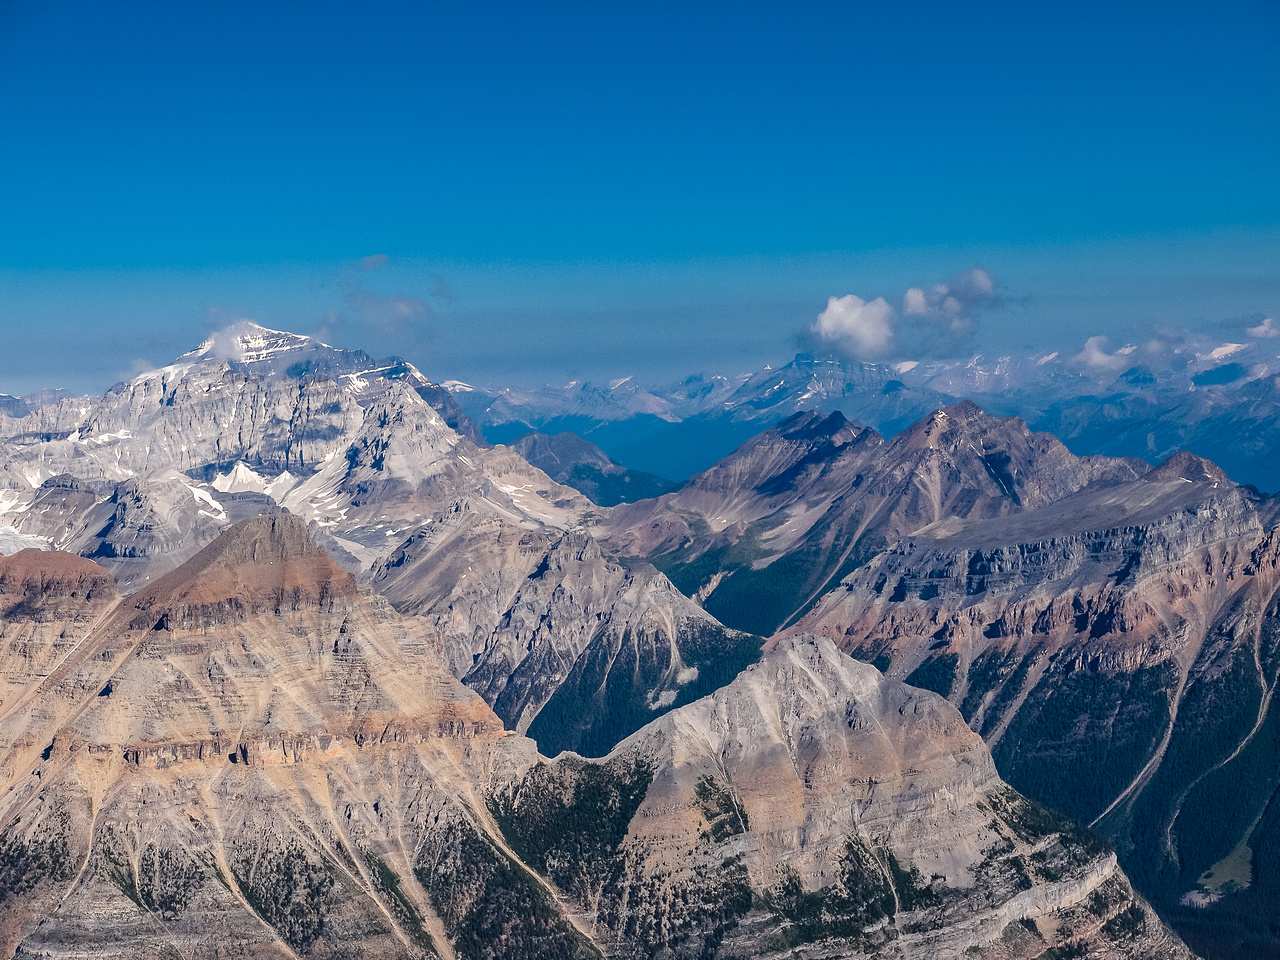 Temple, Whymper, Hector, Panorama Ridge and Boom Mountain.